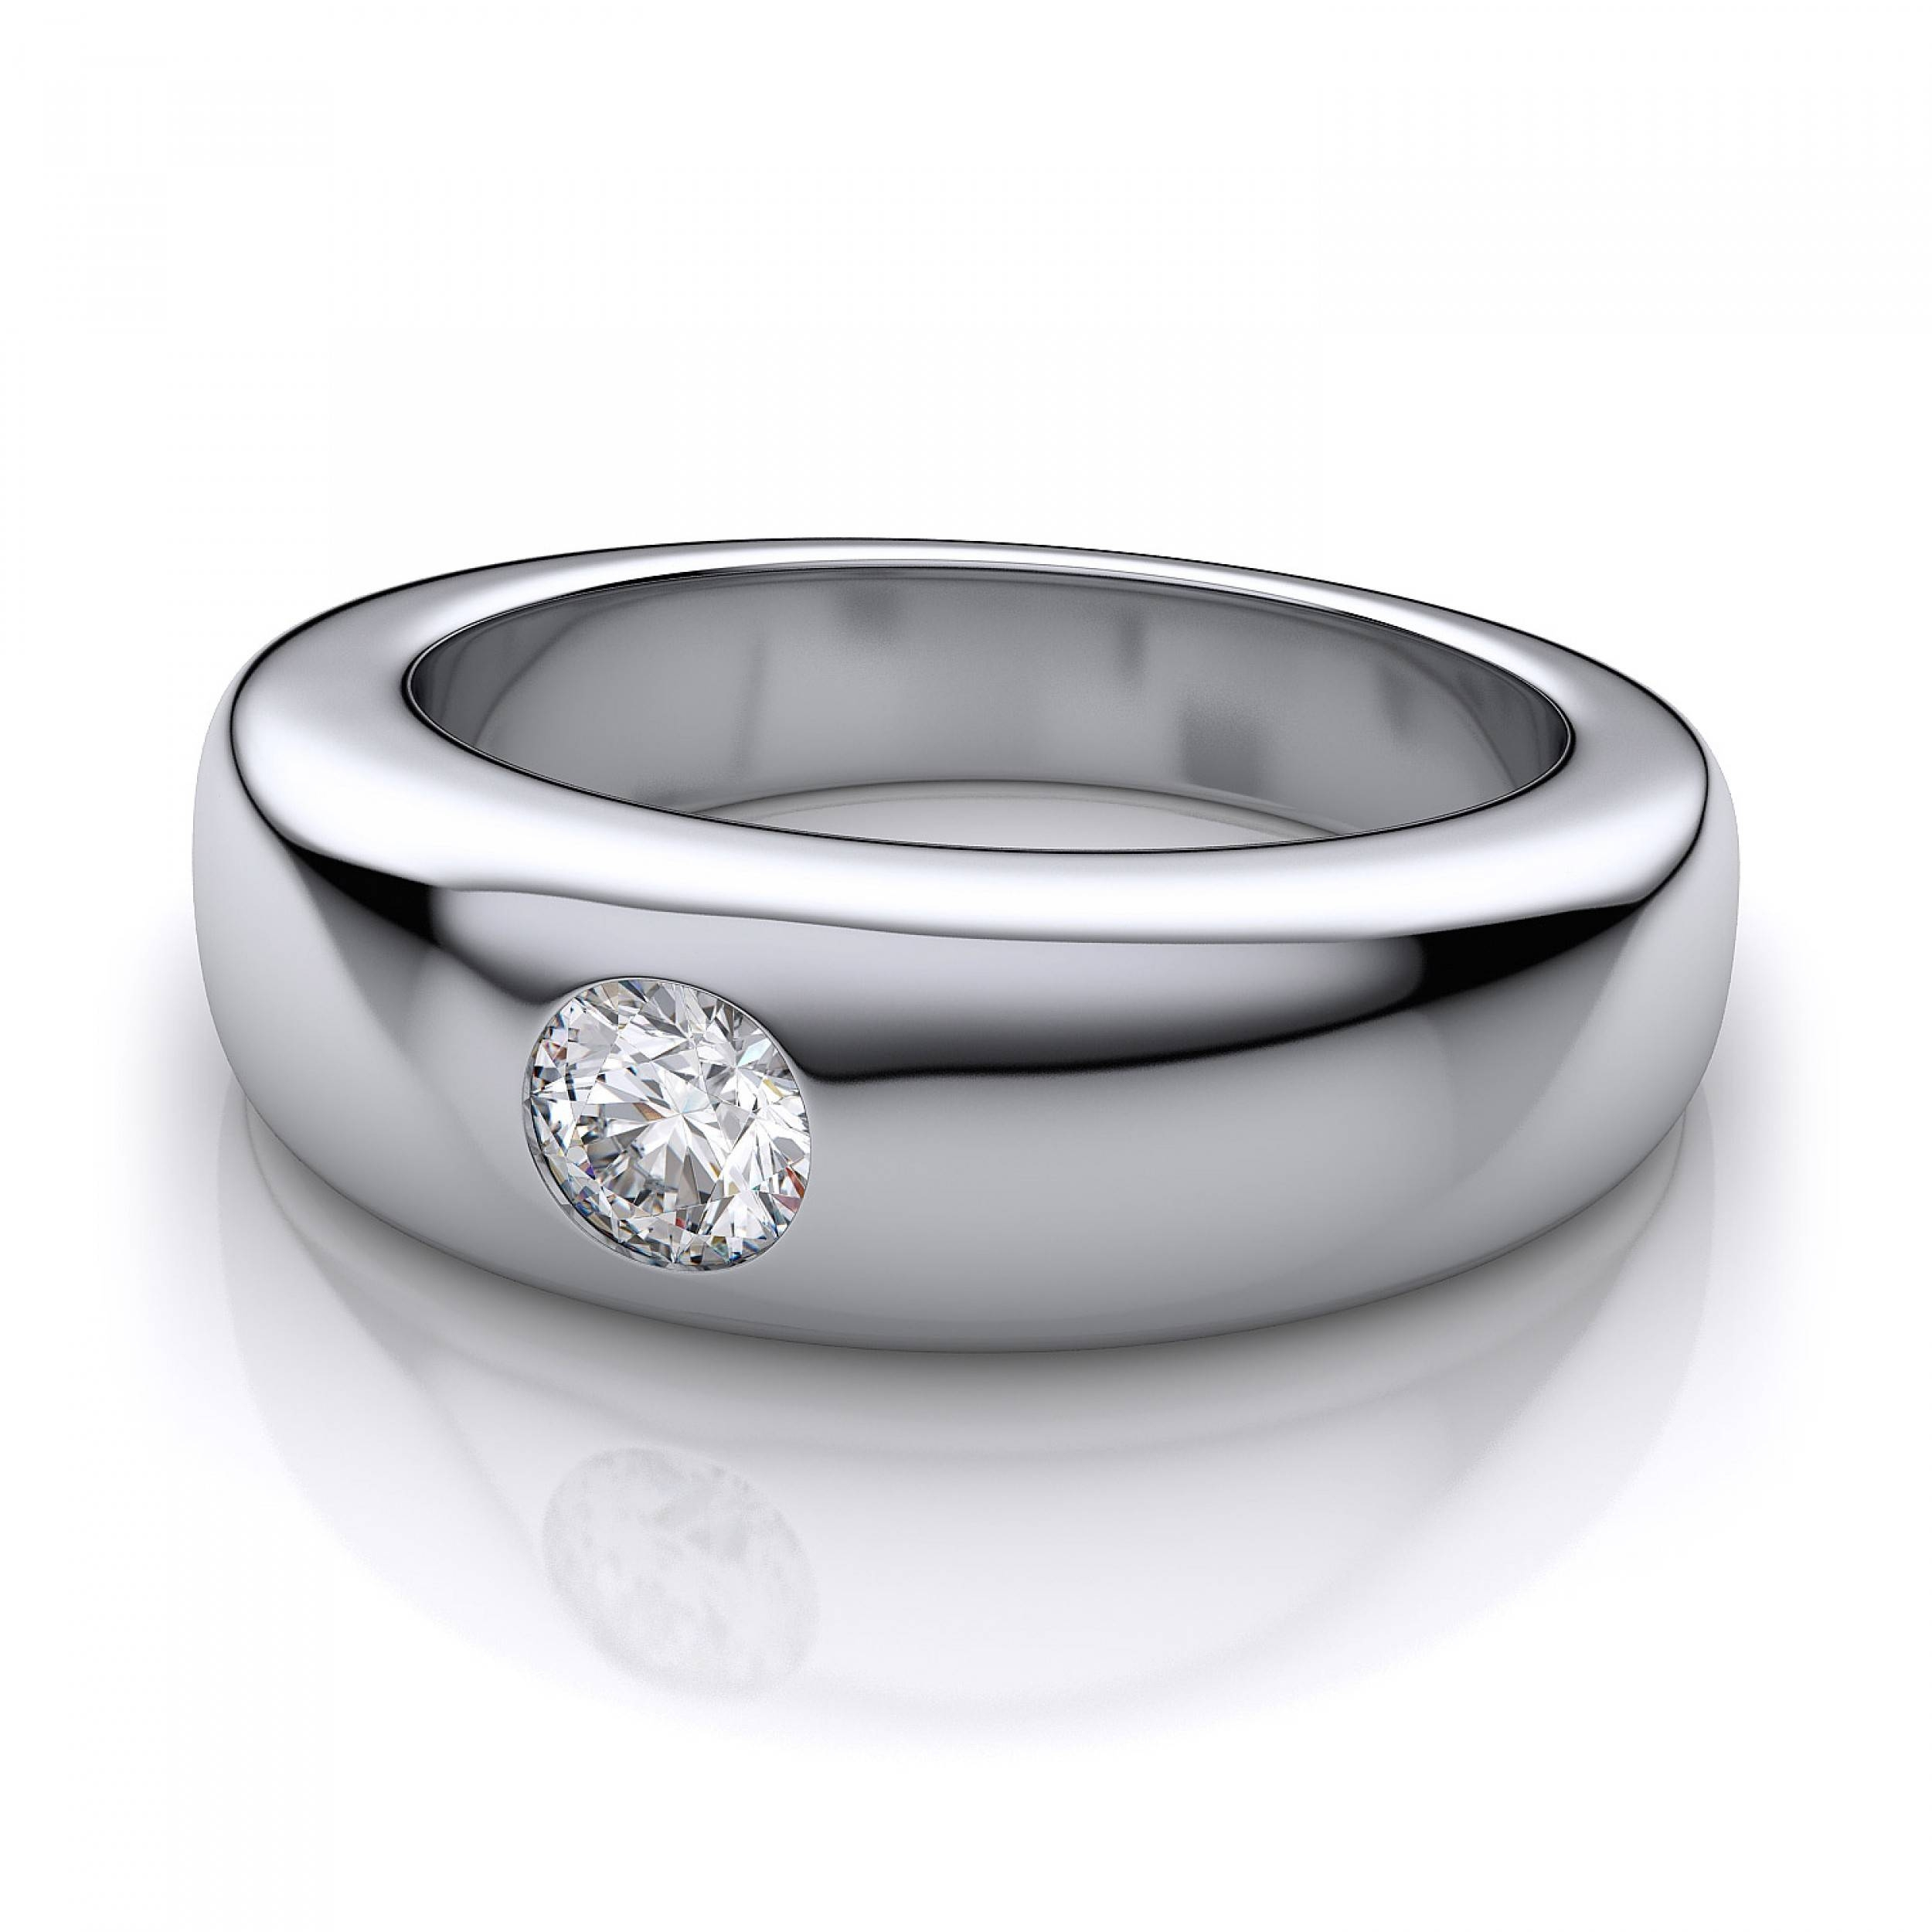 6.8Mm 6.8Mm Men's Diamond Wedding Ring In 14K White Gold With Male Wedding Bands With Diamonds (Gallery 7 of 15)